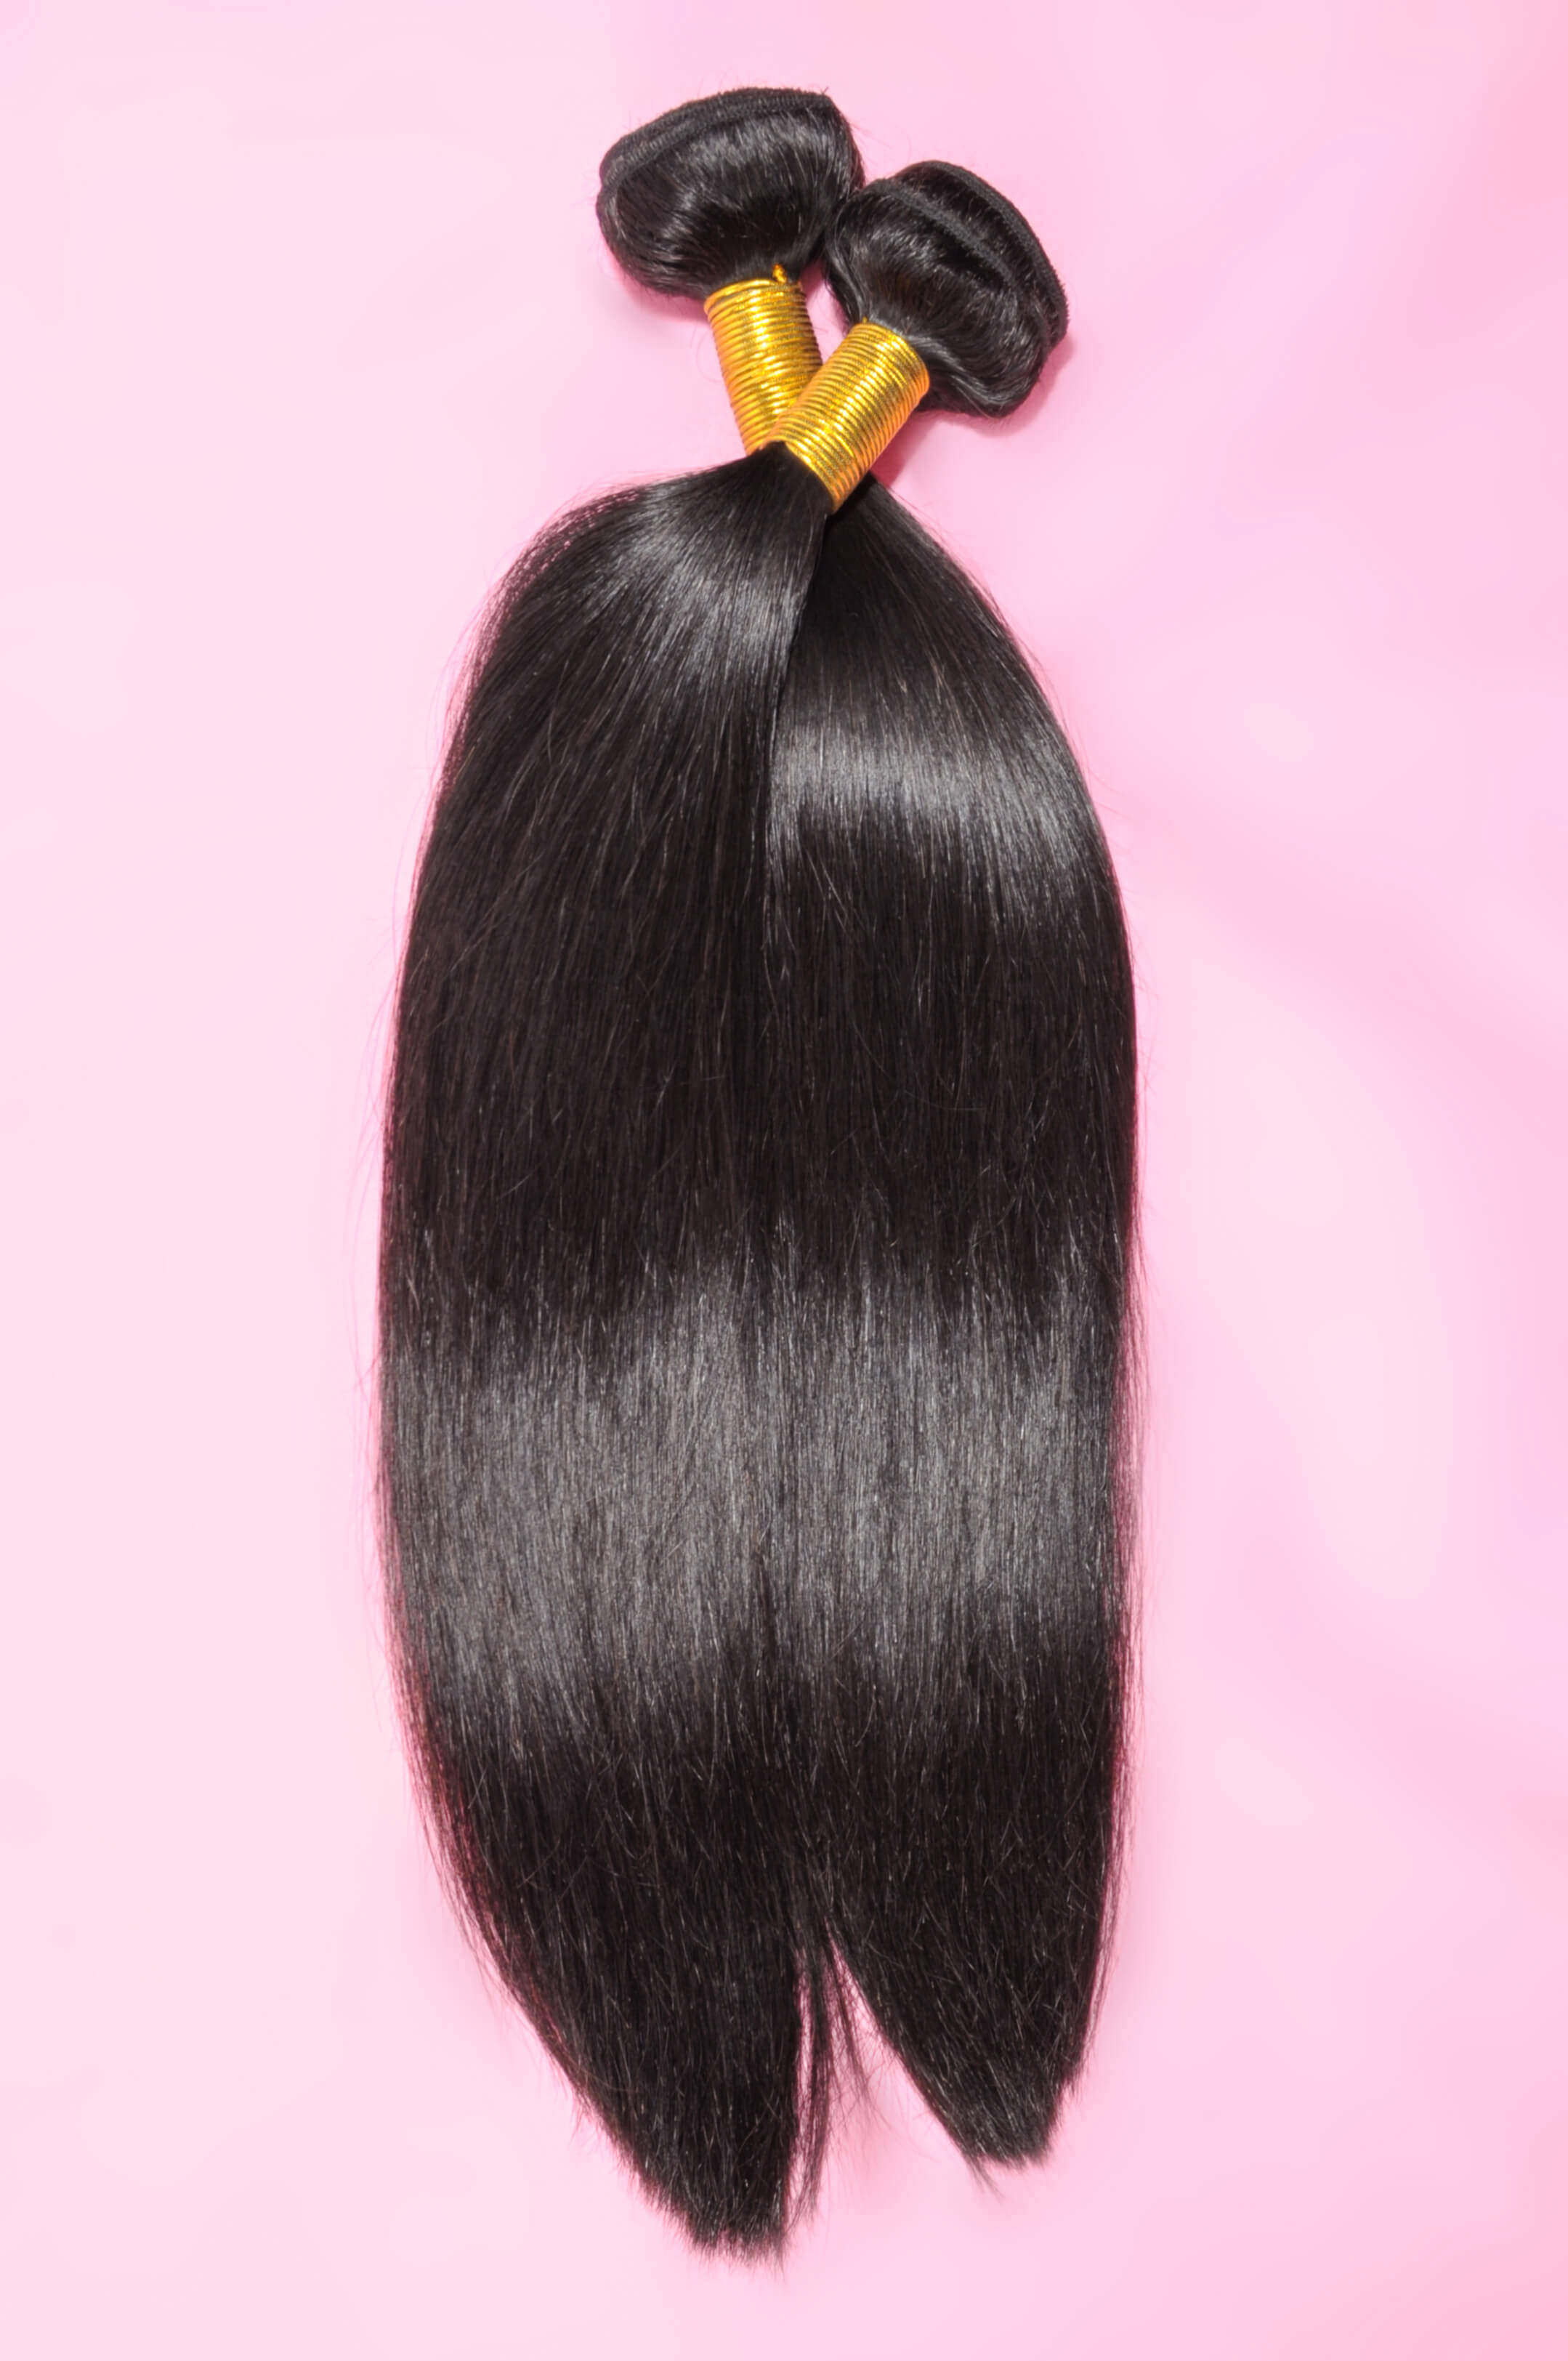 Remy hair is